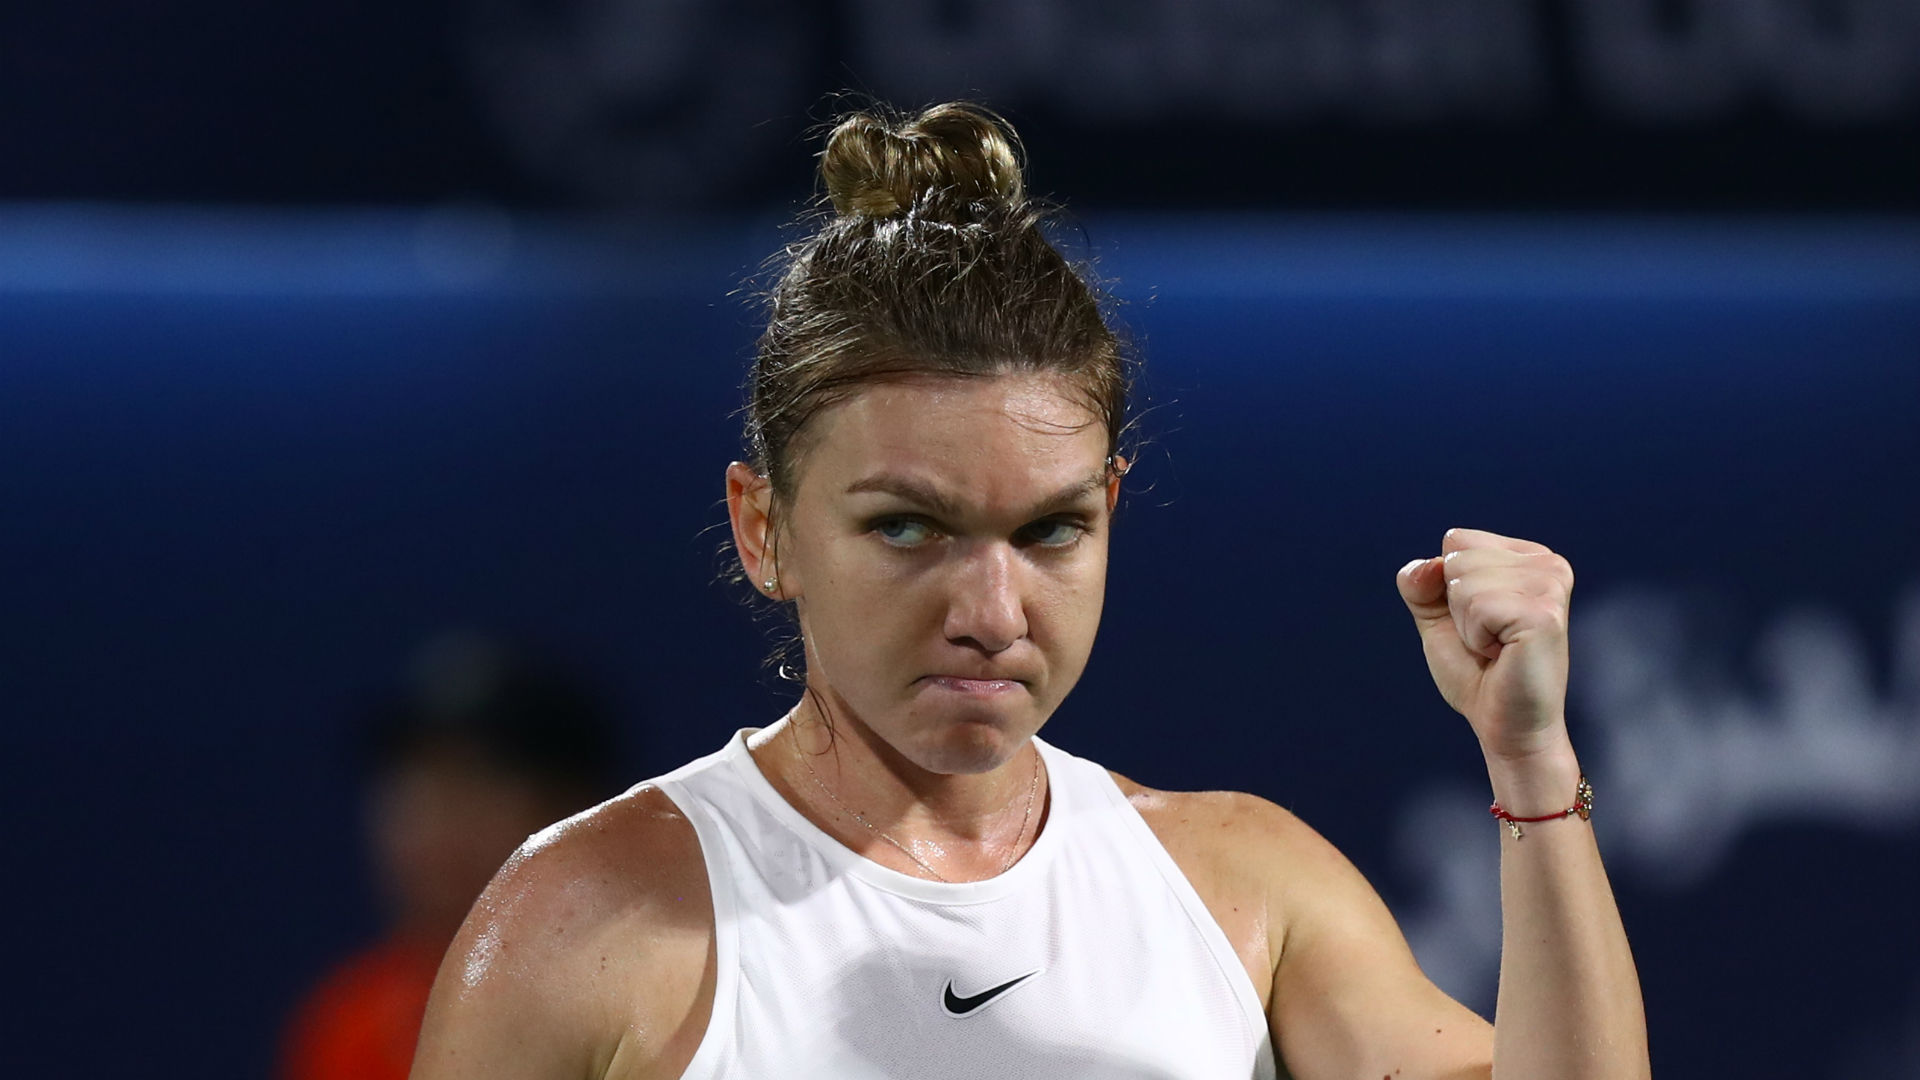 Halep edges out Hercog on WTA Tour return in Prague